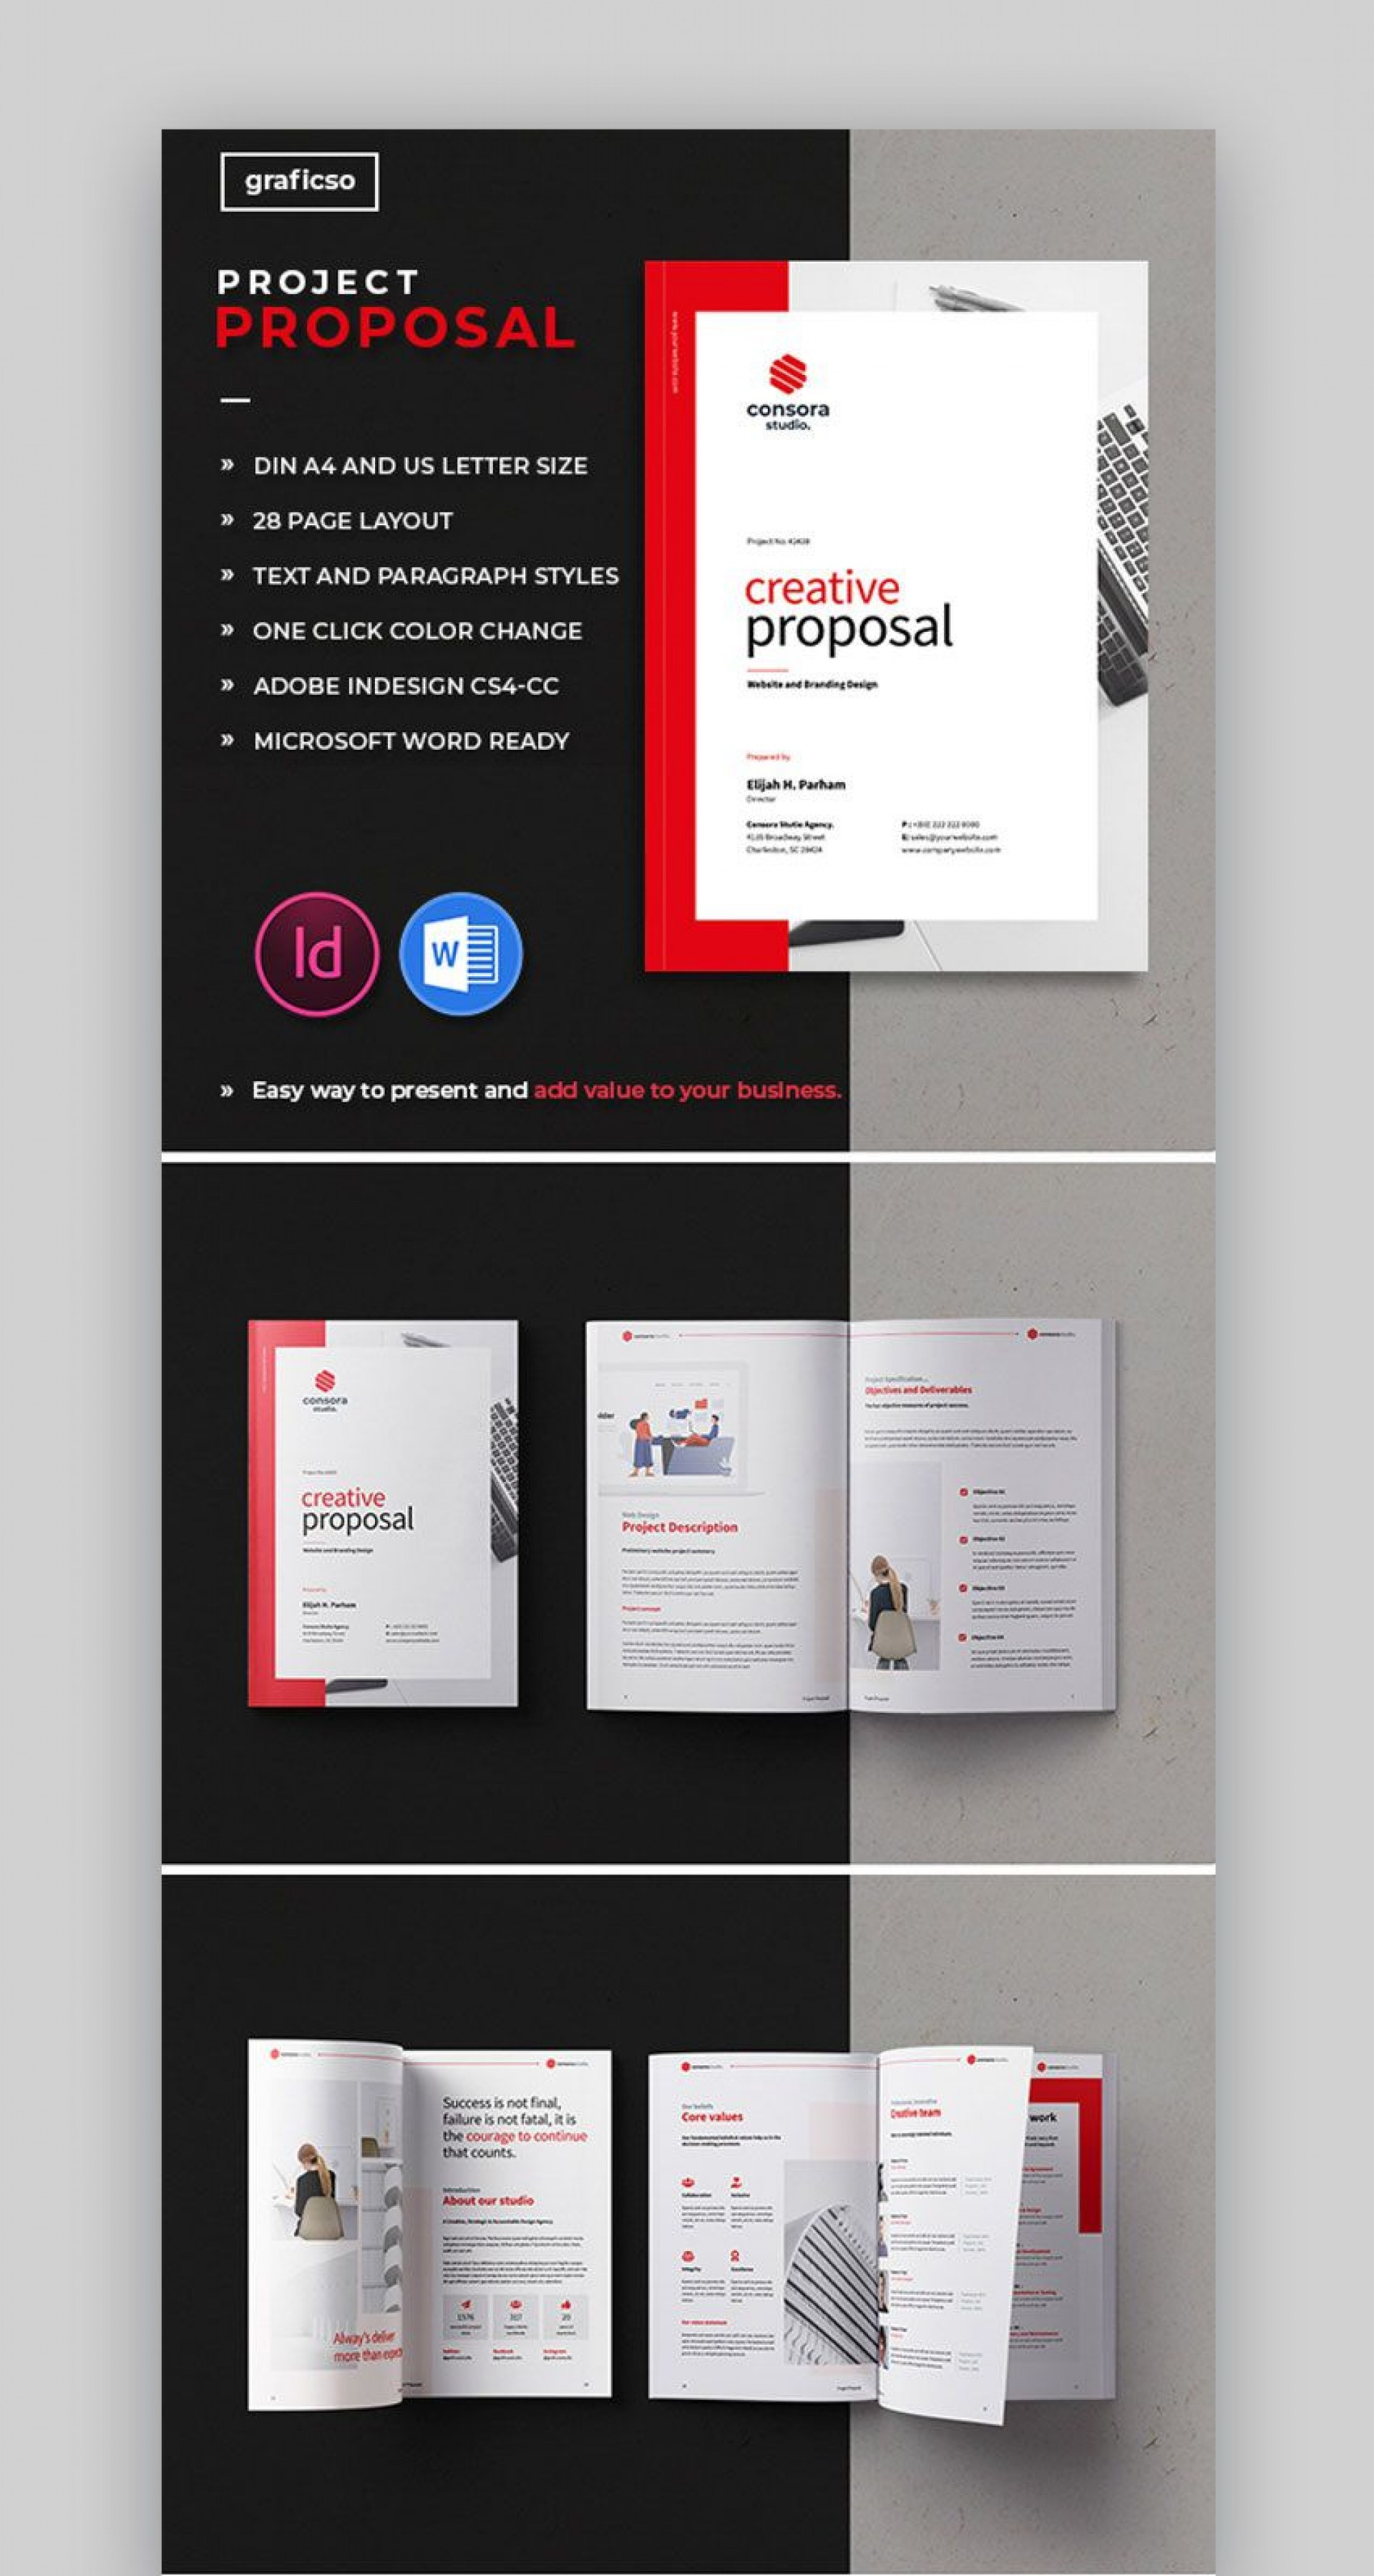 007 Frightening Graphic Design Proposal Template Word 1920